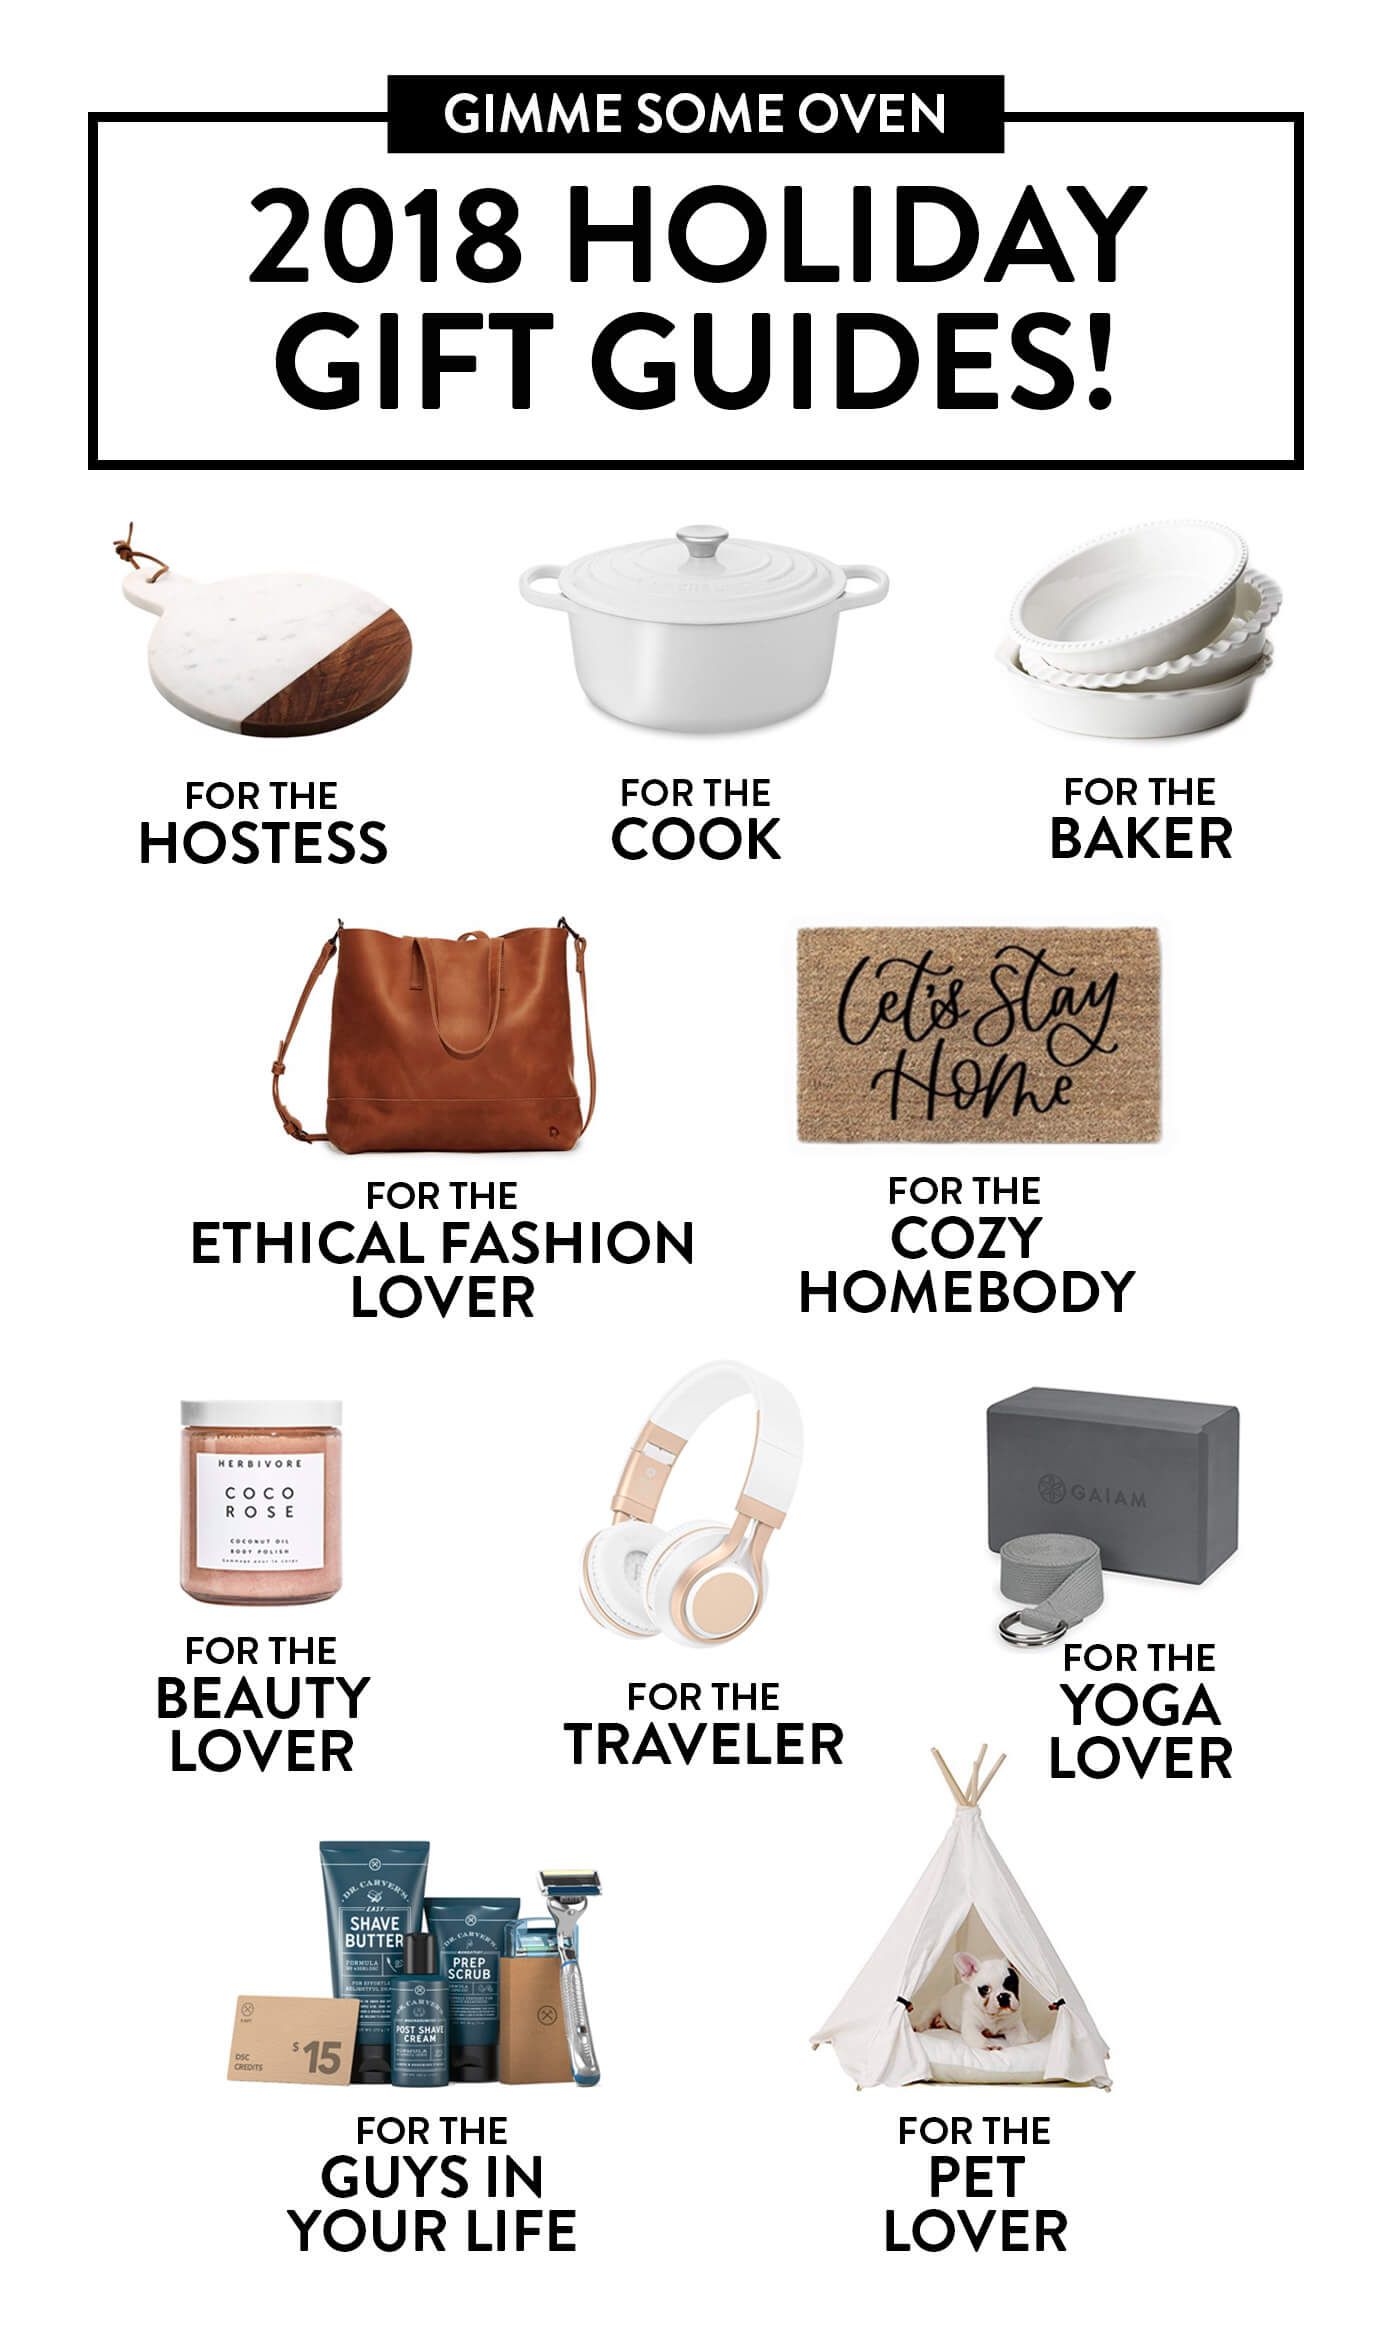 421bf5f919f1 2018 Holiday Gift Guides from Gimme Some Oven